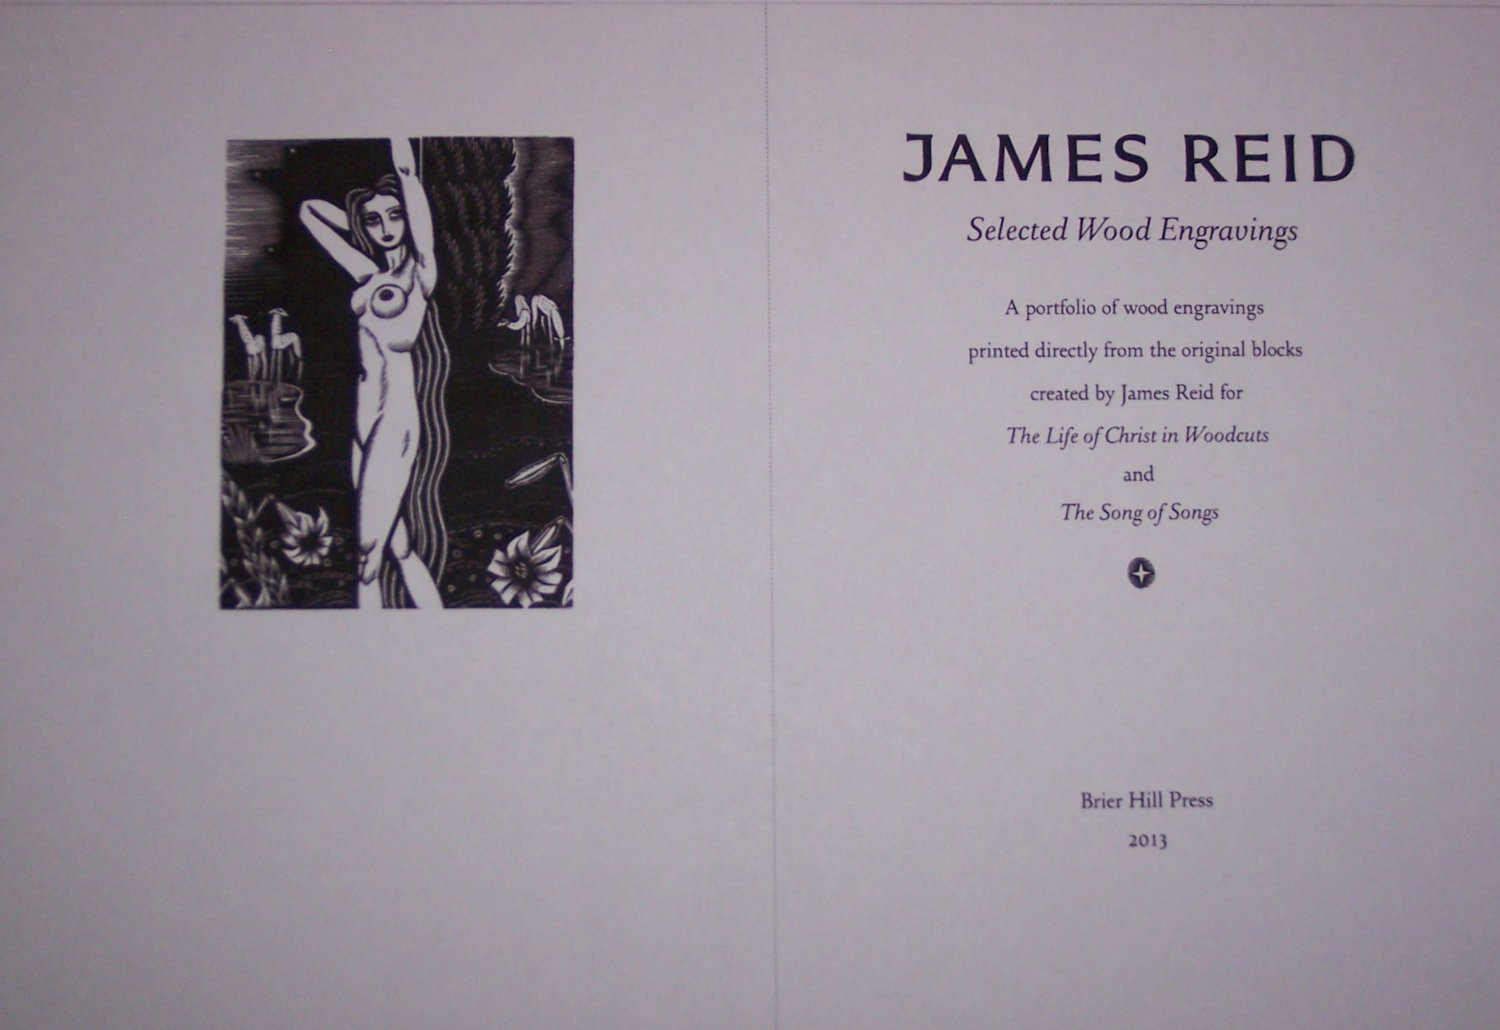 James Reid: Selected Wood Engravings , Brier Hill Press, 2013. A limited edition of 125 portfolios, twelve not for sale, containing 32 wood engravings printed directly from the original blocks together with descriptive booklet in custom lipped clamshell portfolio box.   $1,500